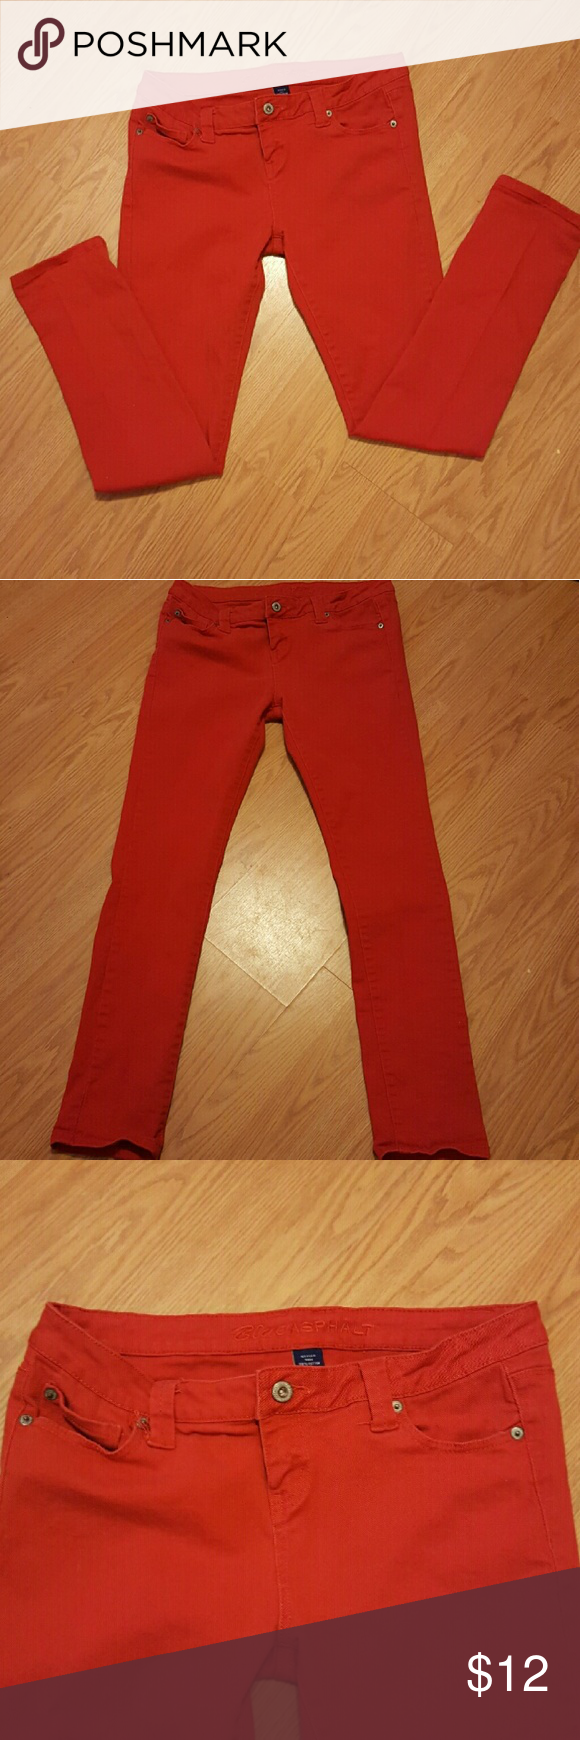 Women's Red skinny jeans Red skinny jeans from Wet Seal. Juniors size 13 in great condition. Price firm. Jeans Skinny